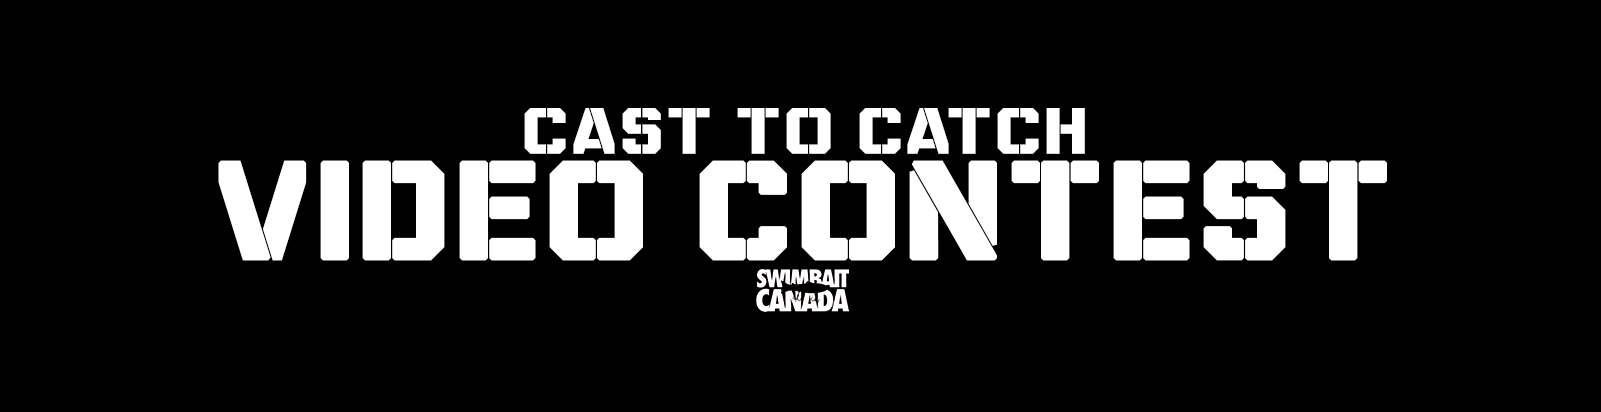 CAST TO CATCH VIDEO CONTEST 2.png